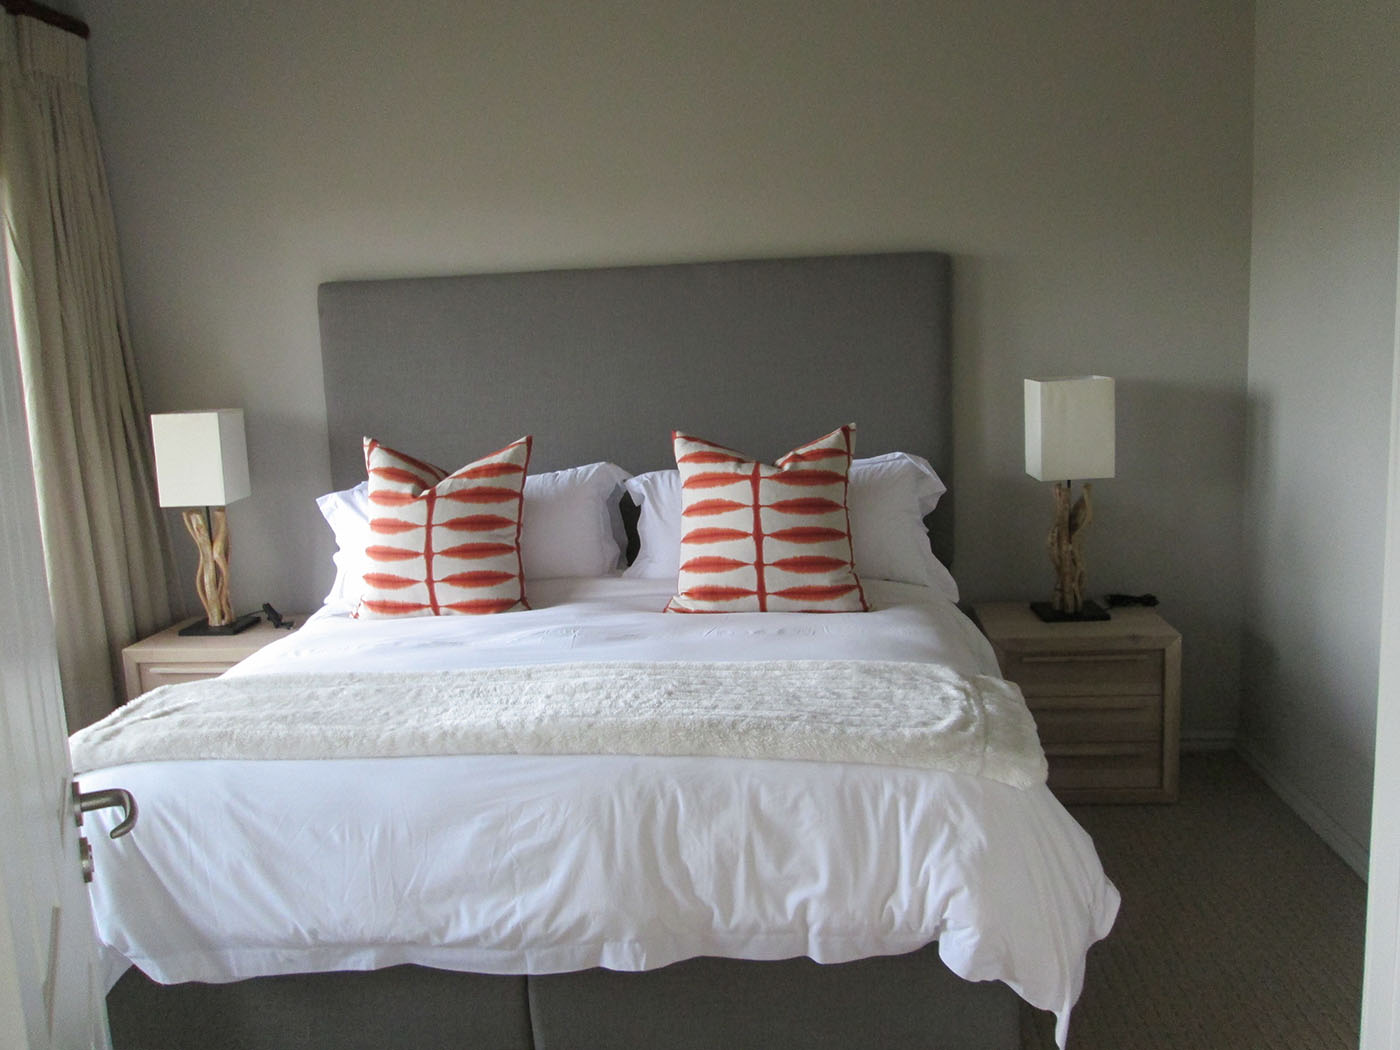 18th-hole-rooms-gowrie-farm-accommodation-midlands-drakensberg-kzn